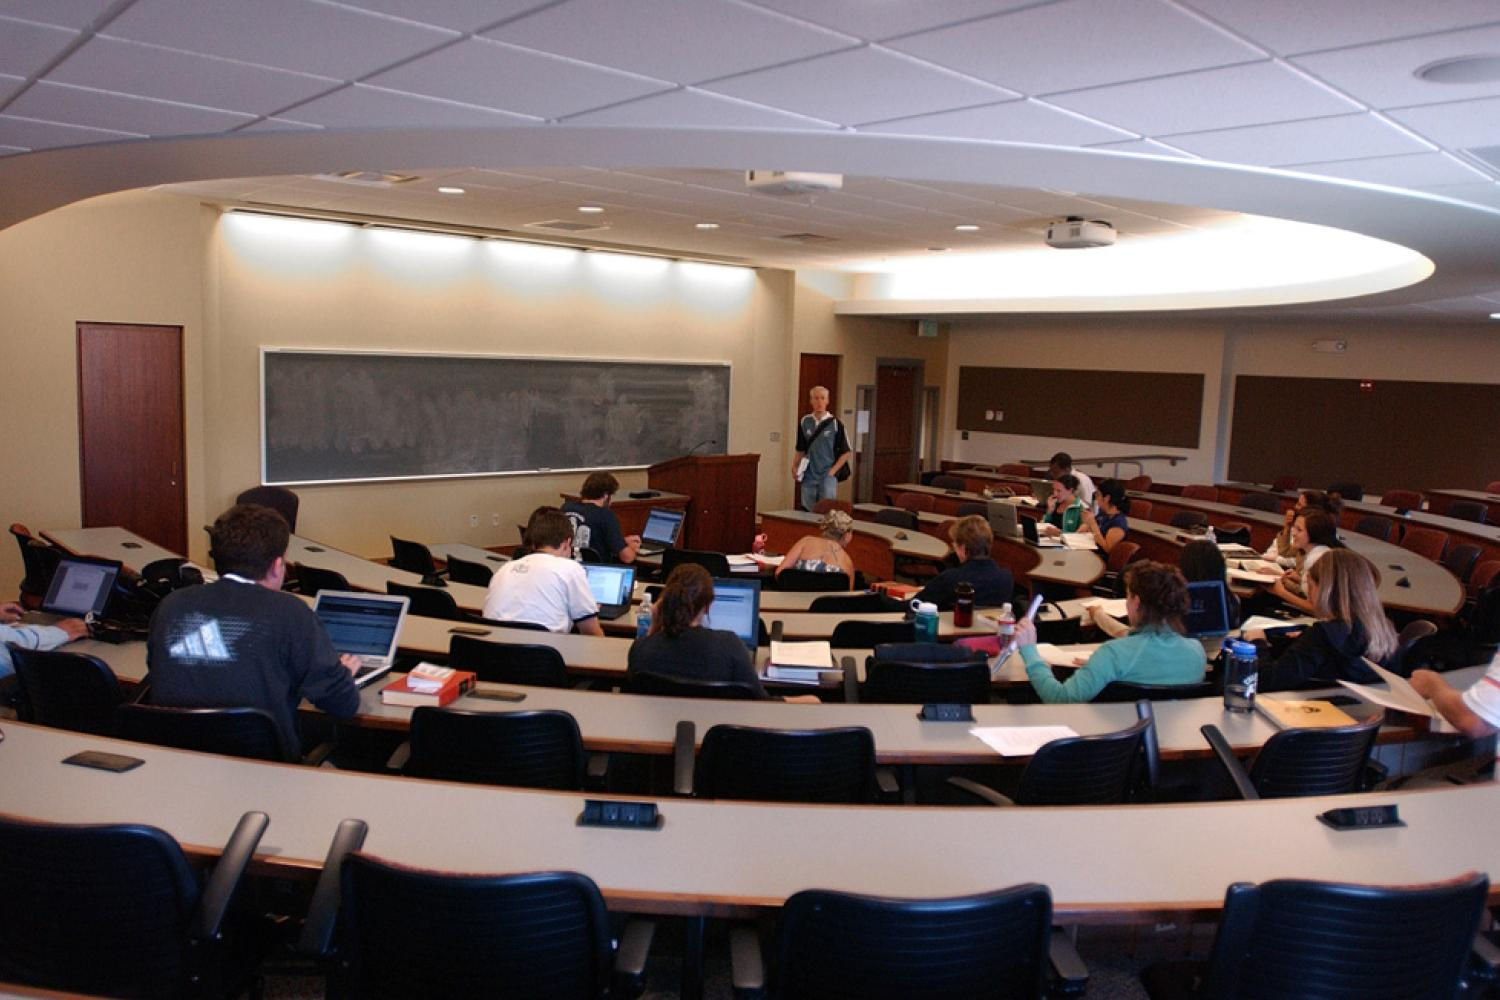 Classroom full of students at CU-Boulder